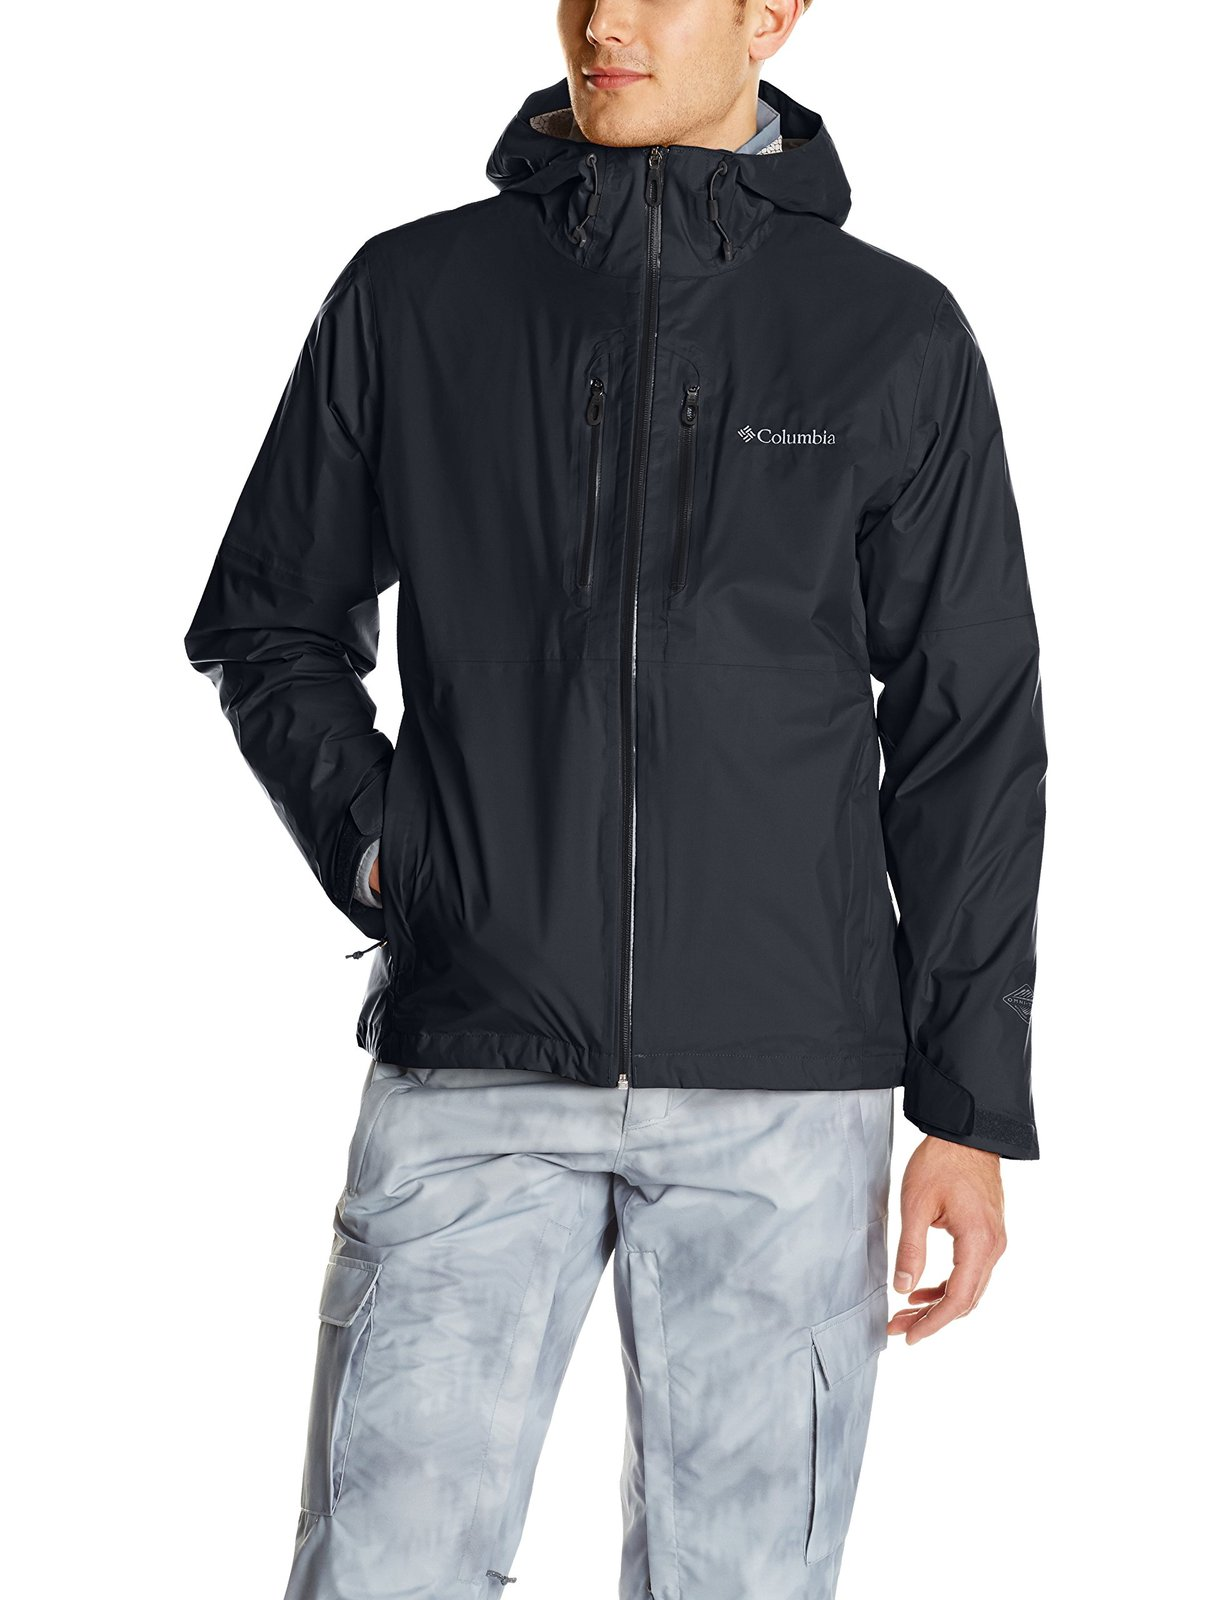 Columbia Men's Northwest Traveler Interchange Jacket, Black, Medium